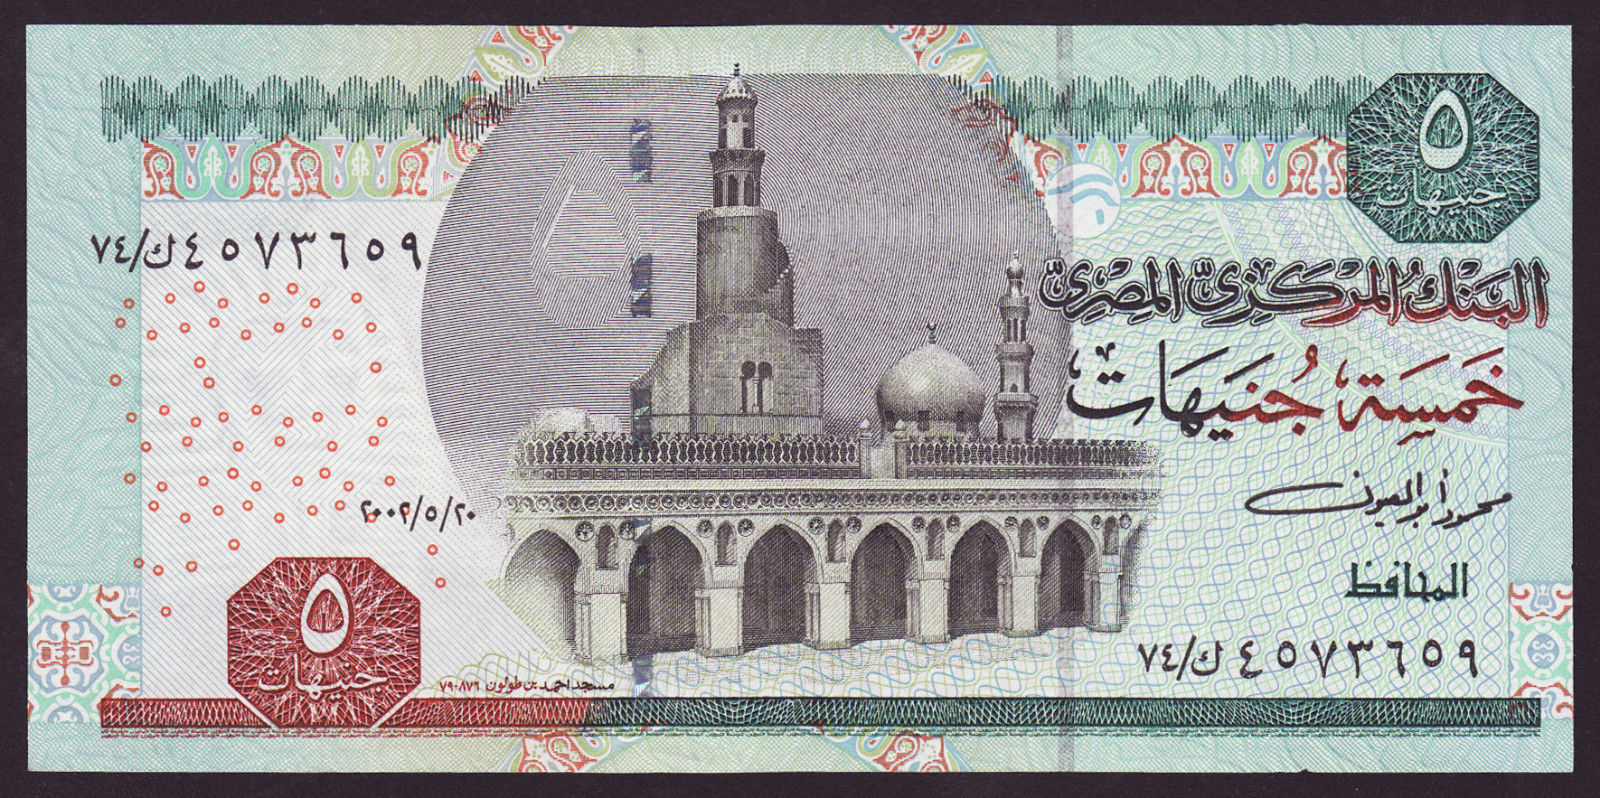 egypt 5 pounds banknote 2001world banknotes amp coins